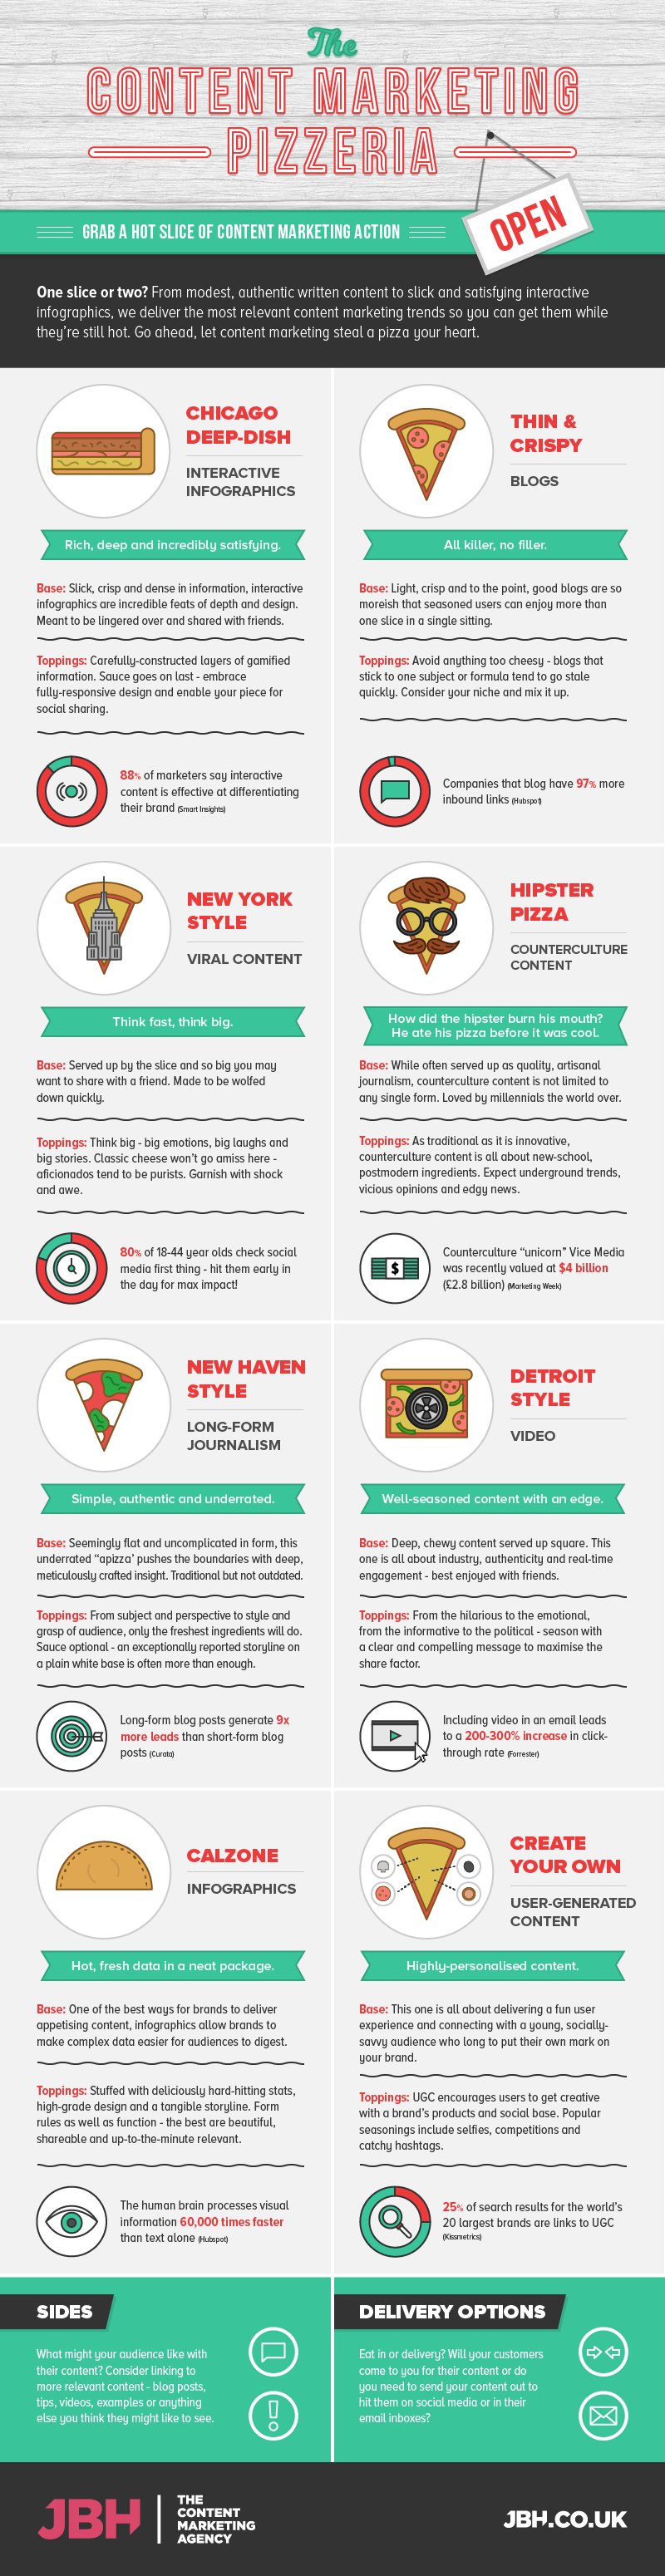 Content Marketing Explained With Pizza